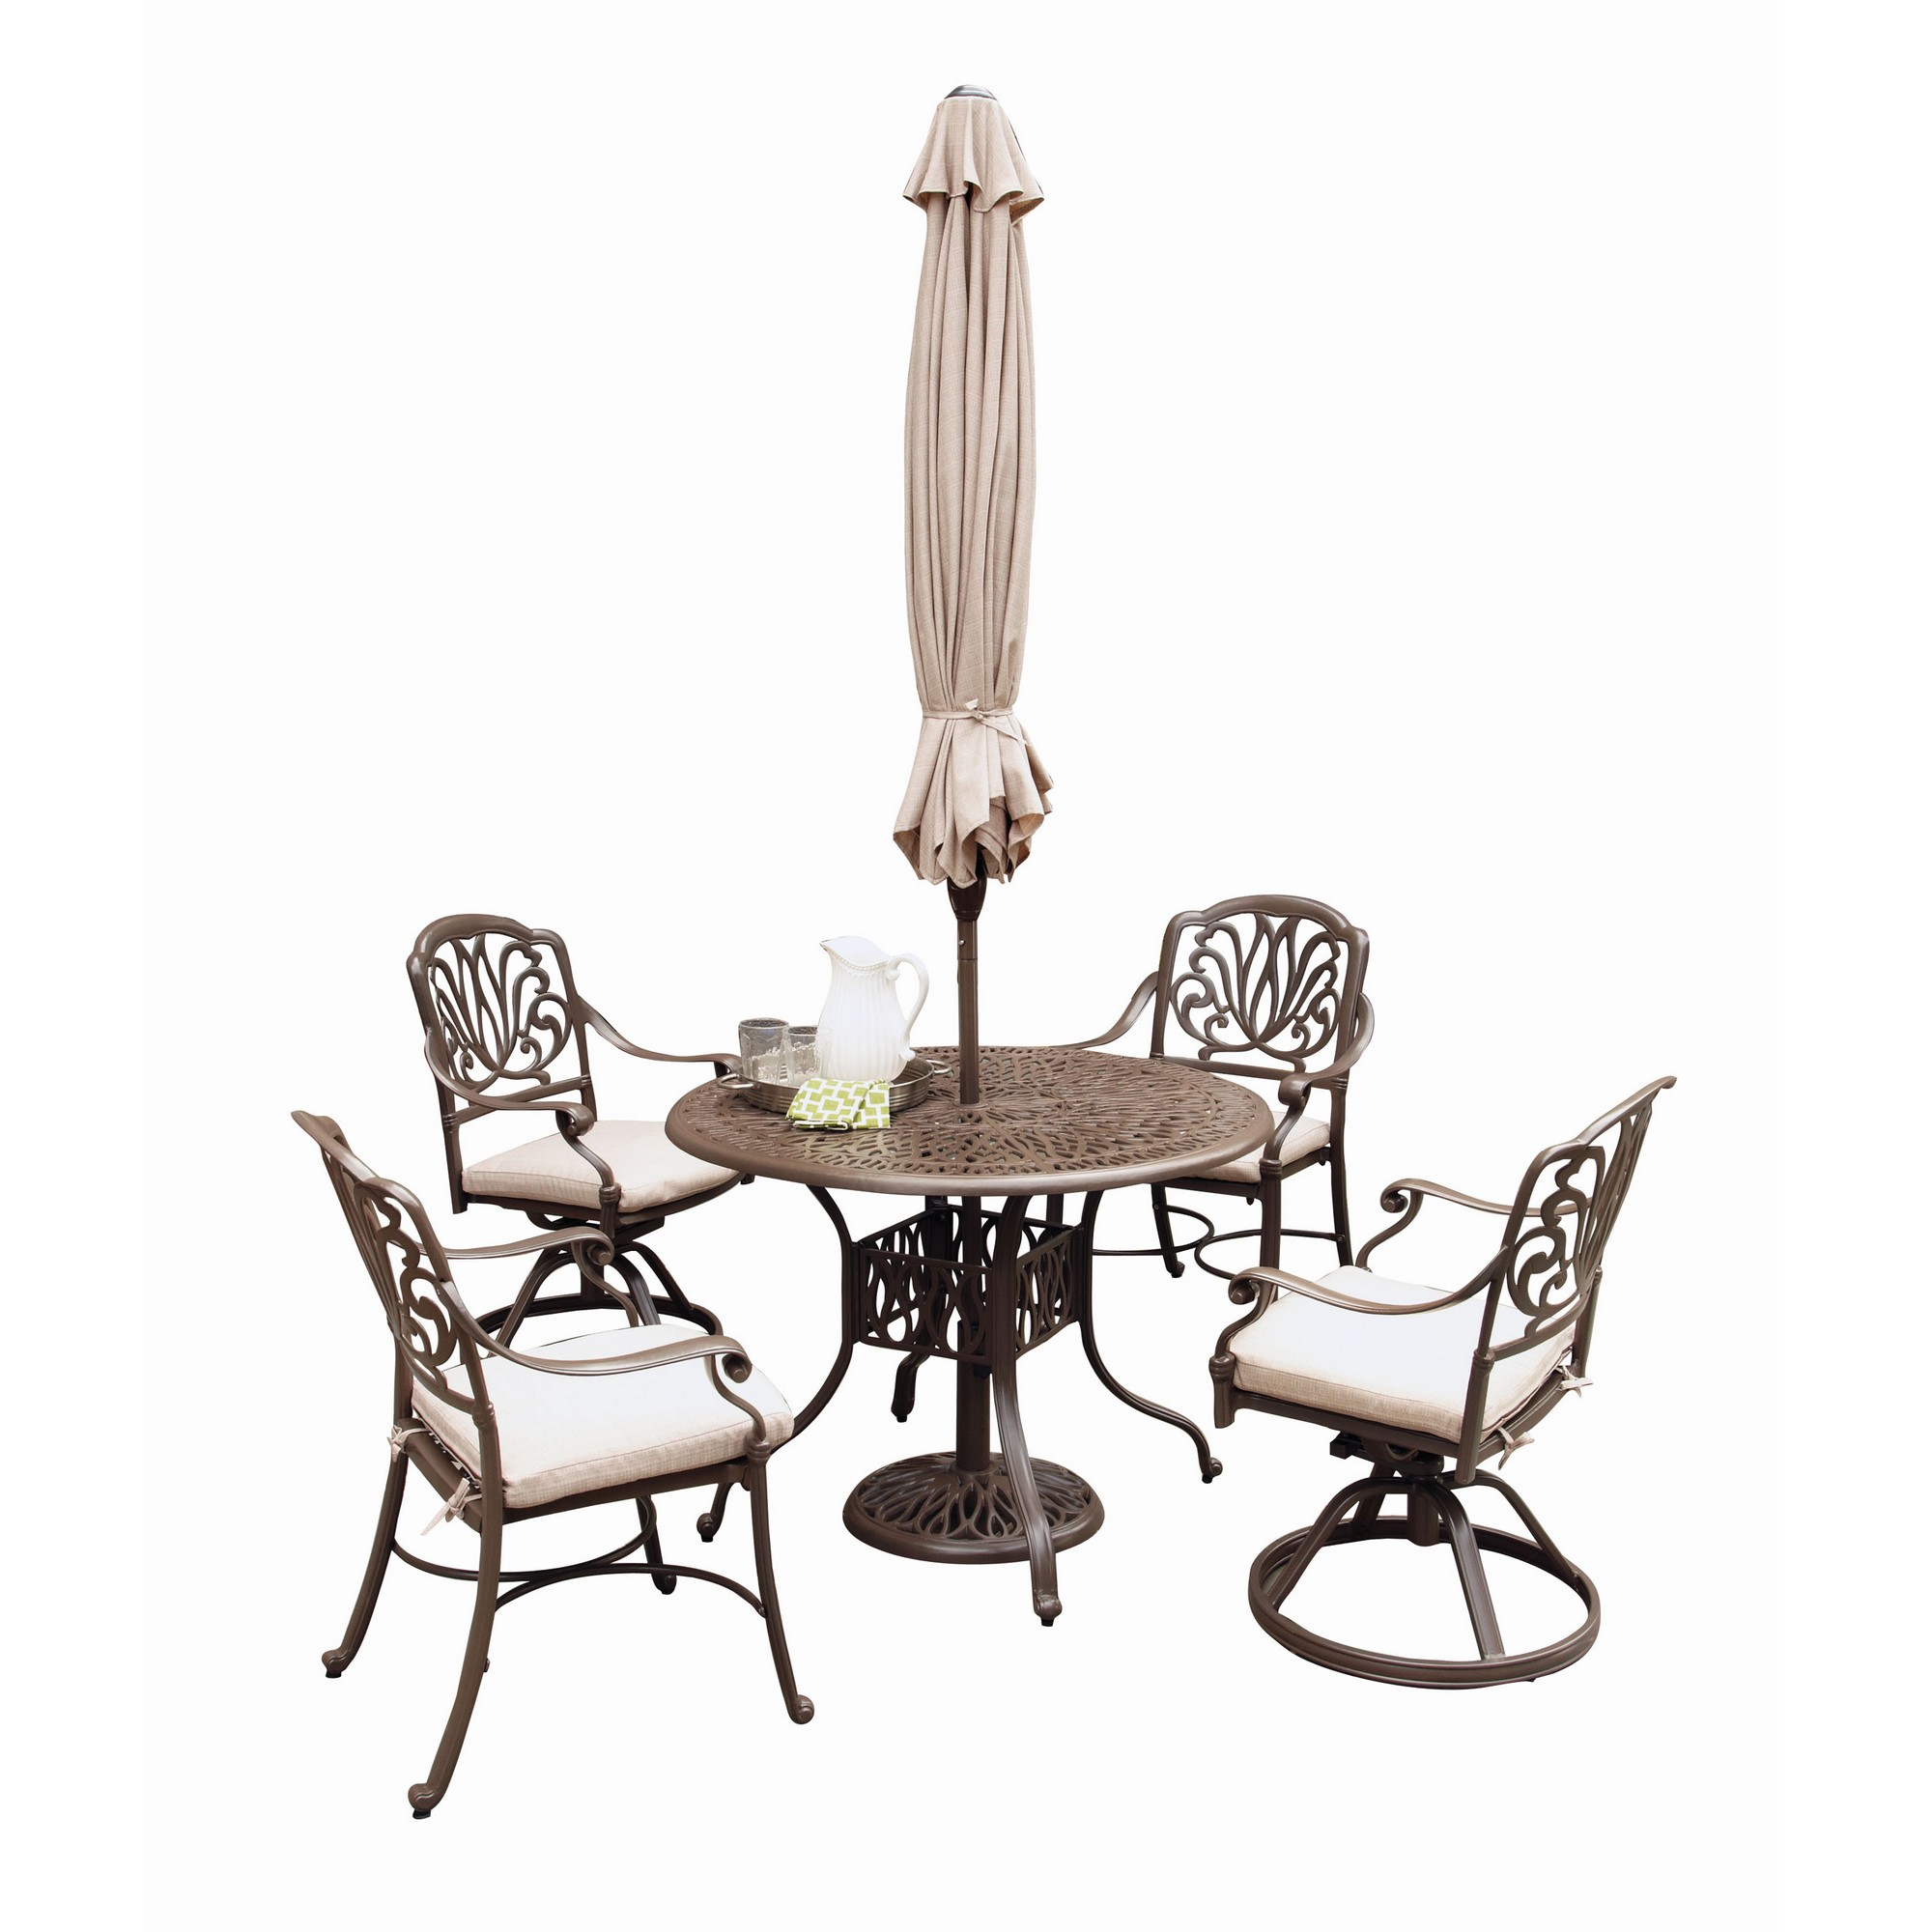 Capri 6-Piece Outdoor Dining Set by homestyles at Value City Furniture